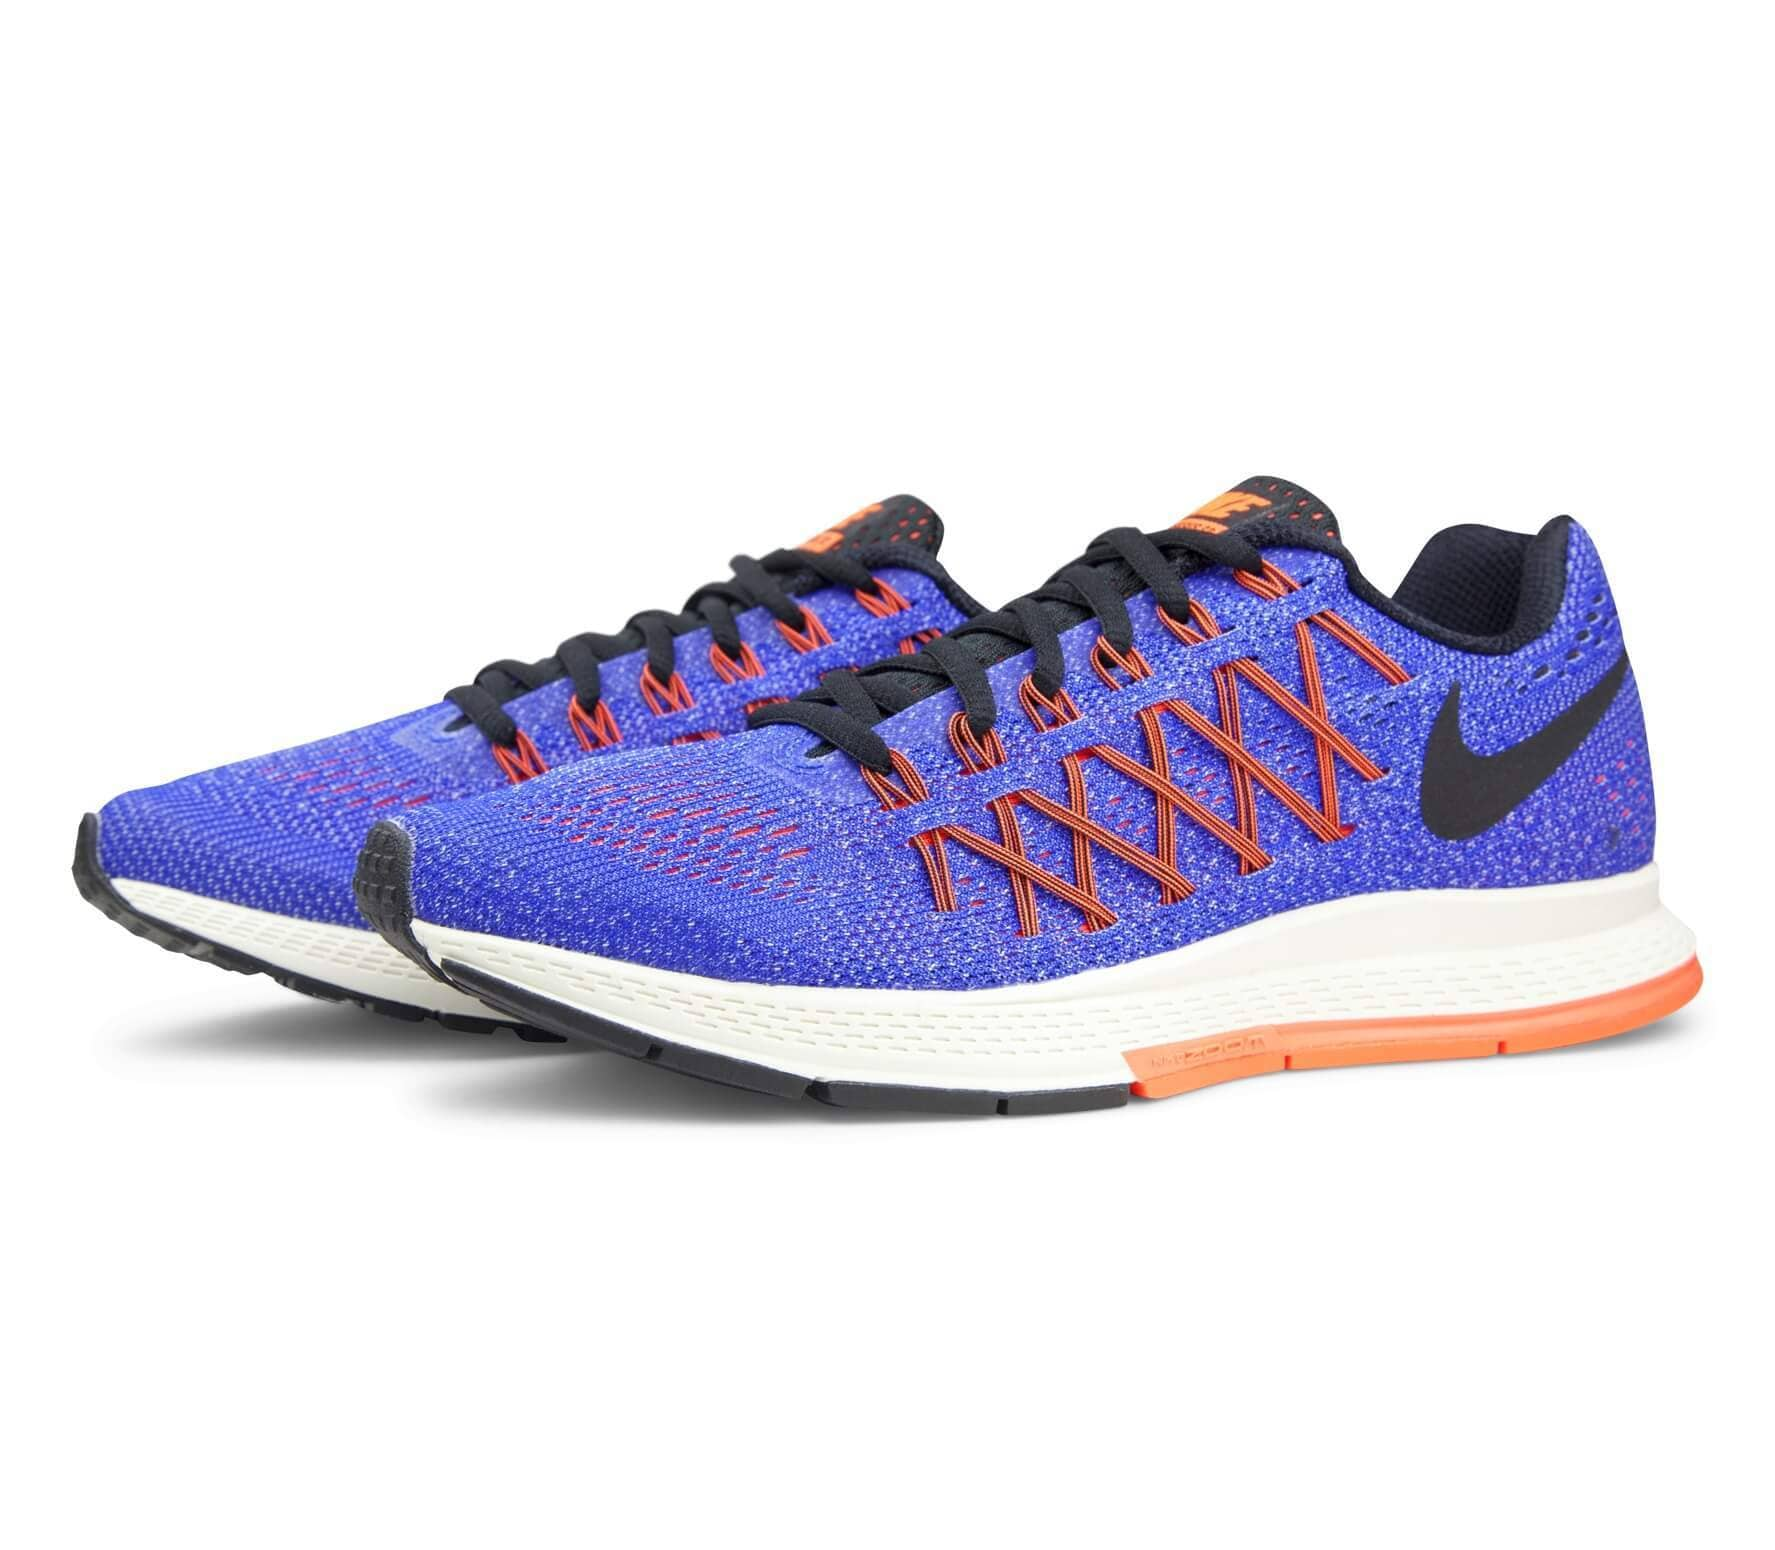 f23261f661259 Nike - Air Zoom Pegasus 32 women s running shoes (purple orange ...